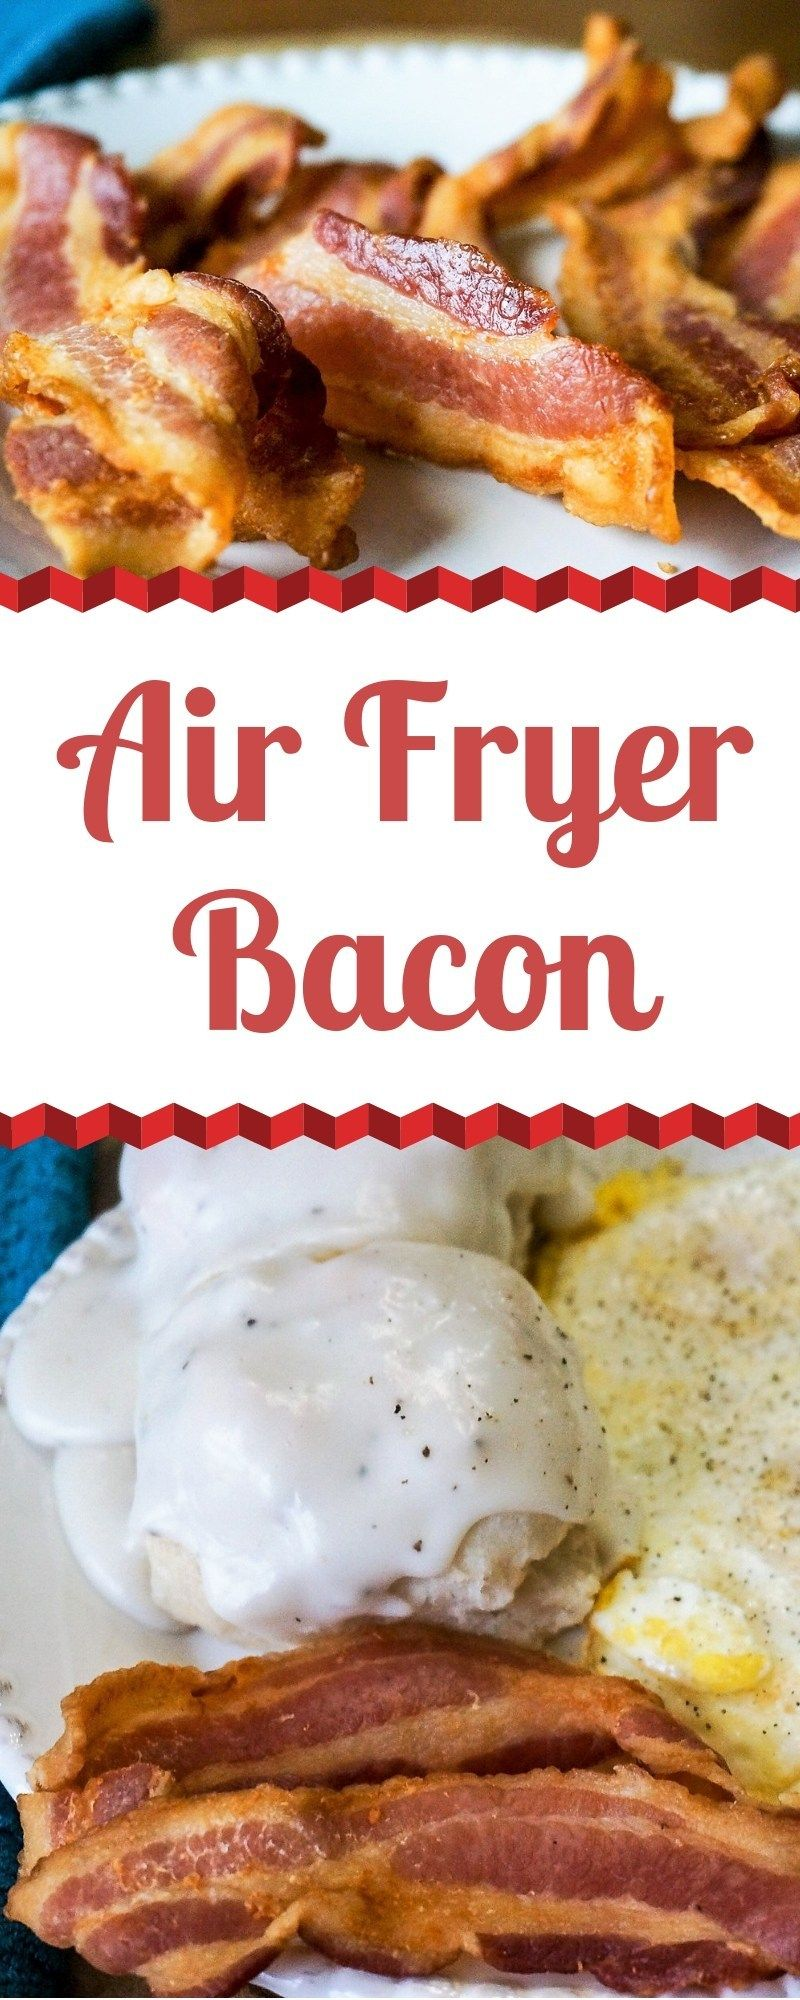 It's so easy to make Crispy Bacon in the Air Fryer. It only takes 10-15 minute to get even thick ba